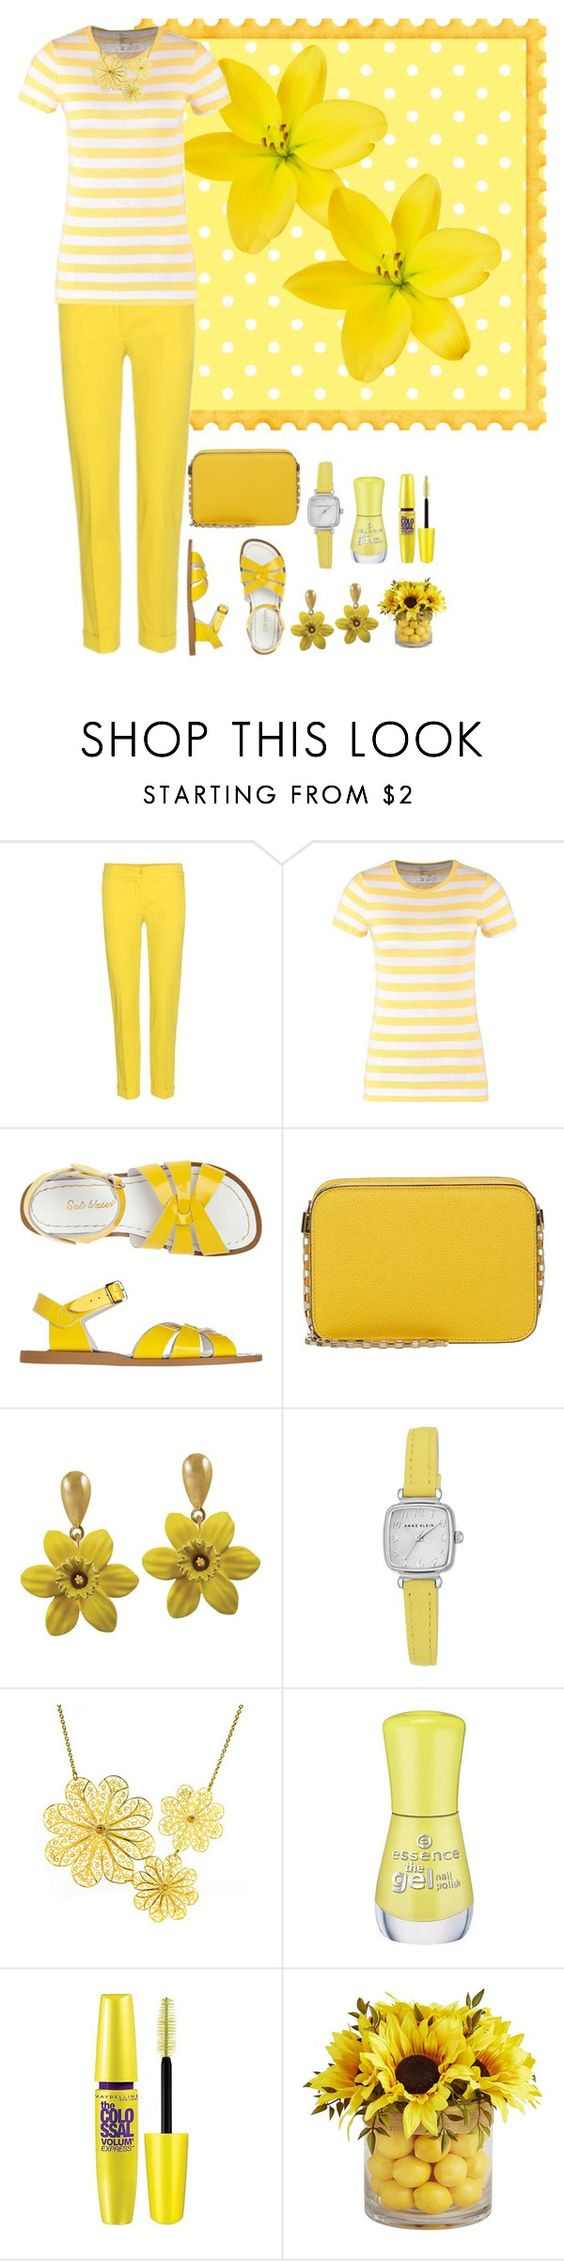 """""""Spring Yellow Fun"""" by alina-n ❤ liked on Polyvore featuring Etro, Toast, Valextra, Anne Klein, Arabel Lebrusan, Essence, Maybelline and Pier 1 Imports"""